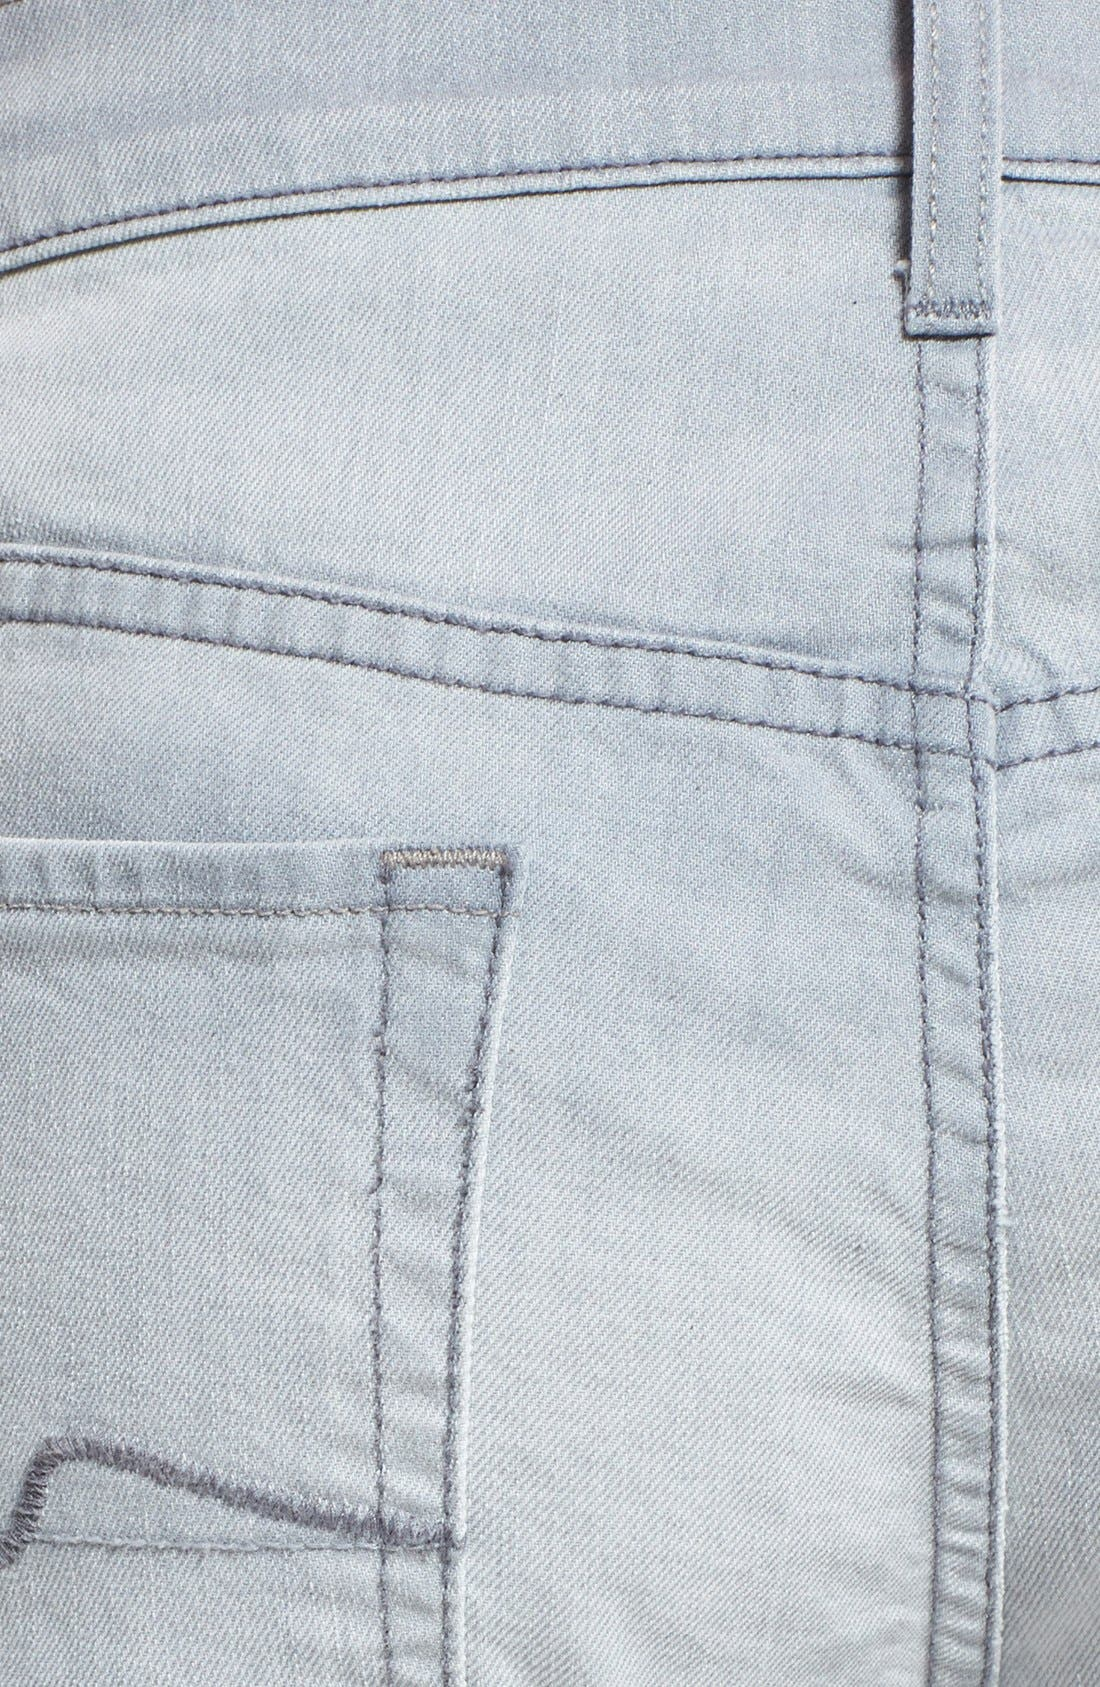 Alternate Image 4  - 7 For All Mankind® 'Standard' Straight Leg Jeans (Ghost Grey)